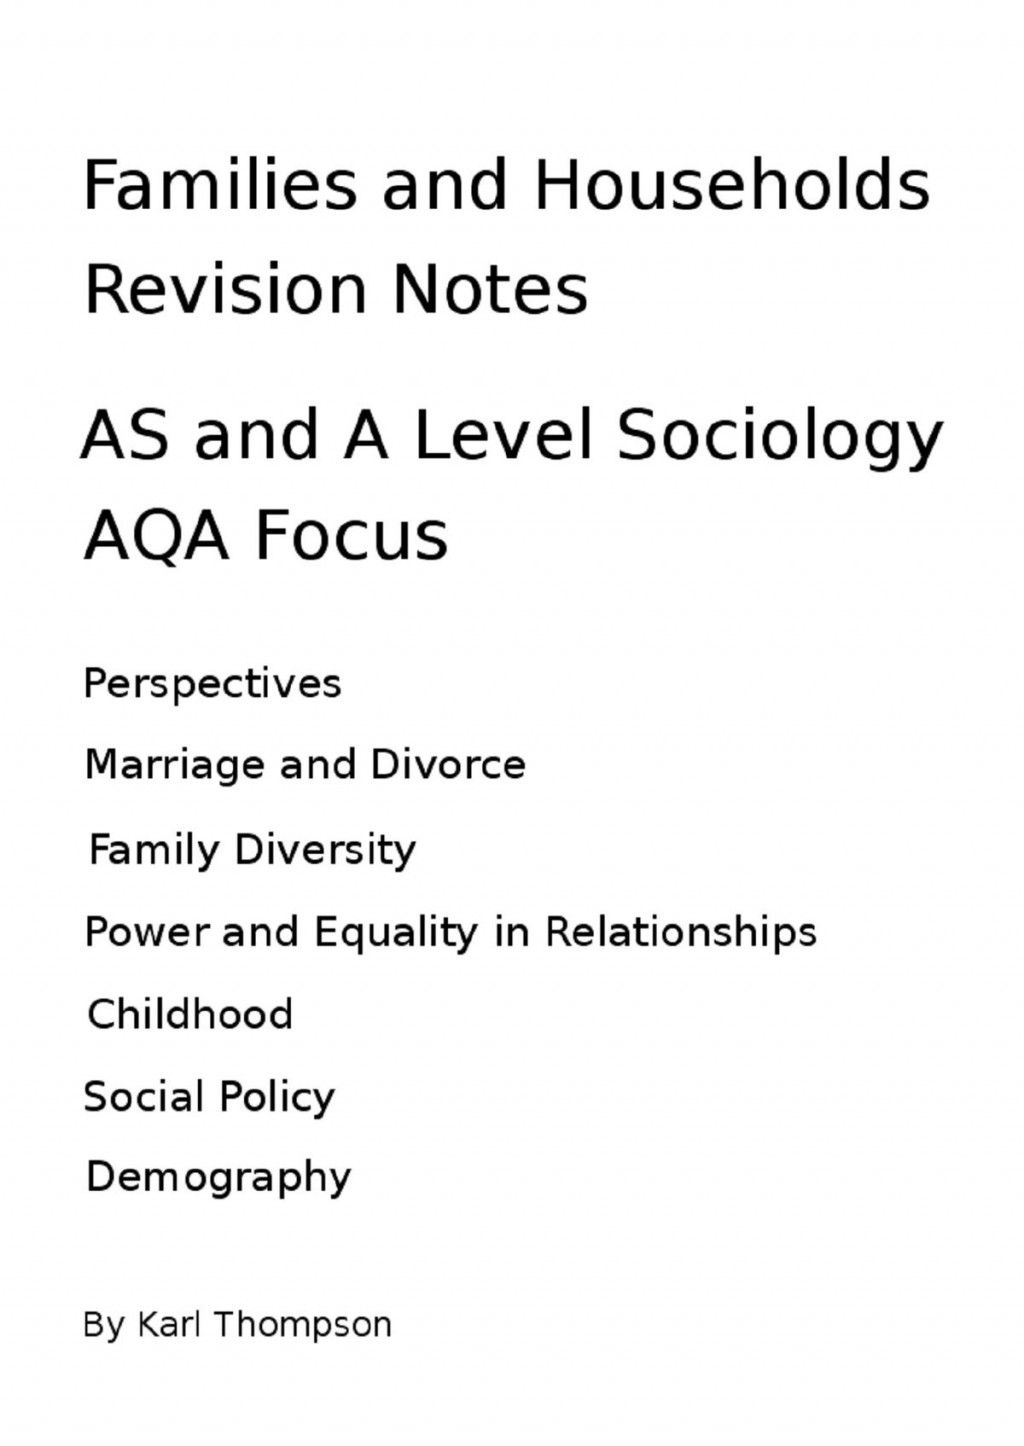 020 Essay Example Families And Households Revision Notes For As Level Sociology Aqa Focus Family Incredible Values In Telugu Richard Rodriguez Large